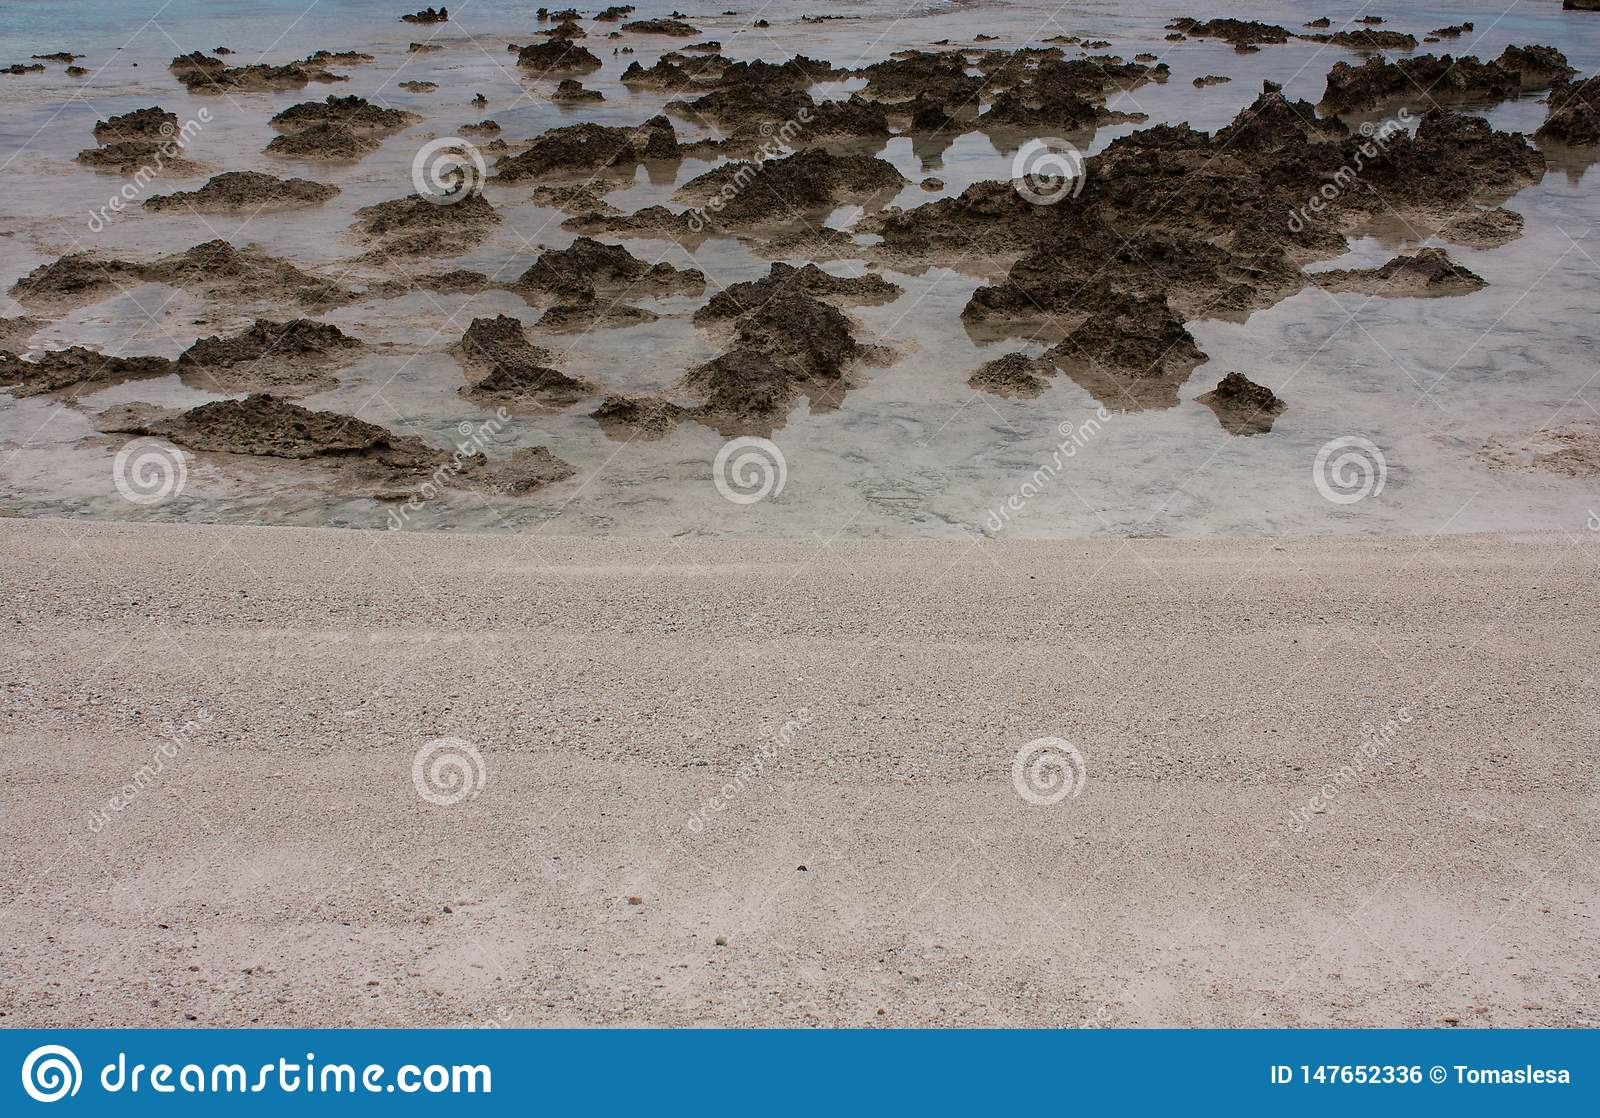 Stones And Rocks At The Beach In Tonga Stock Photo Image Of Tropical Coastline 147652336